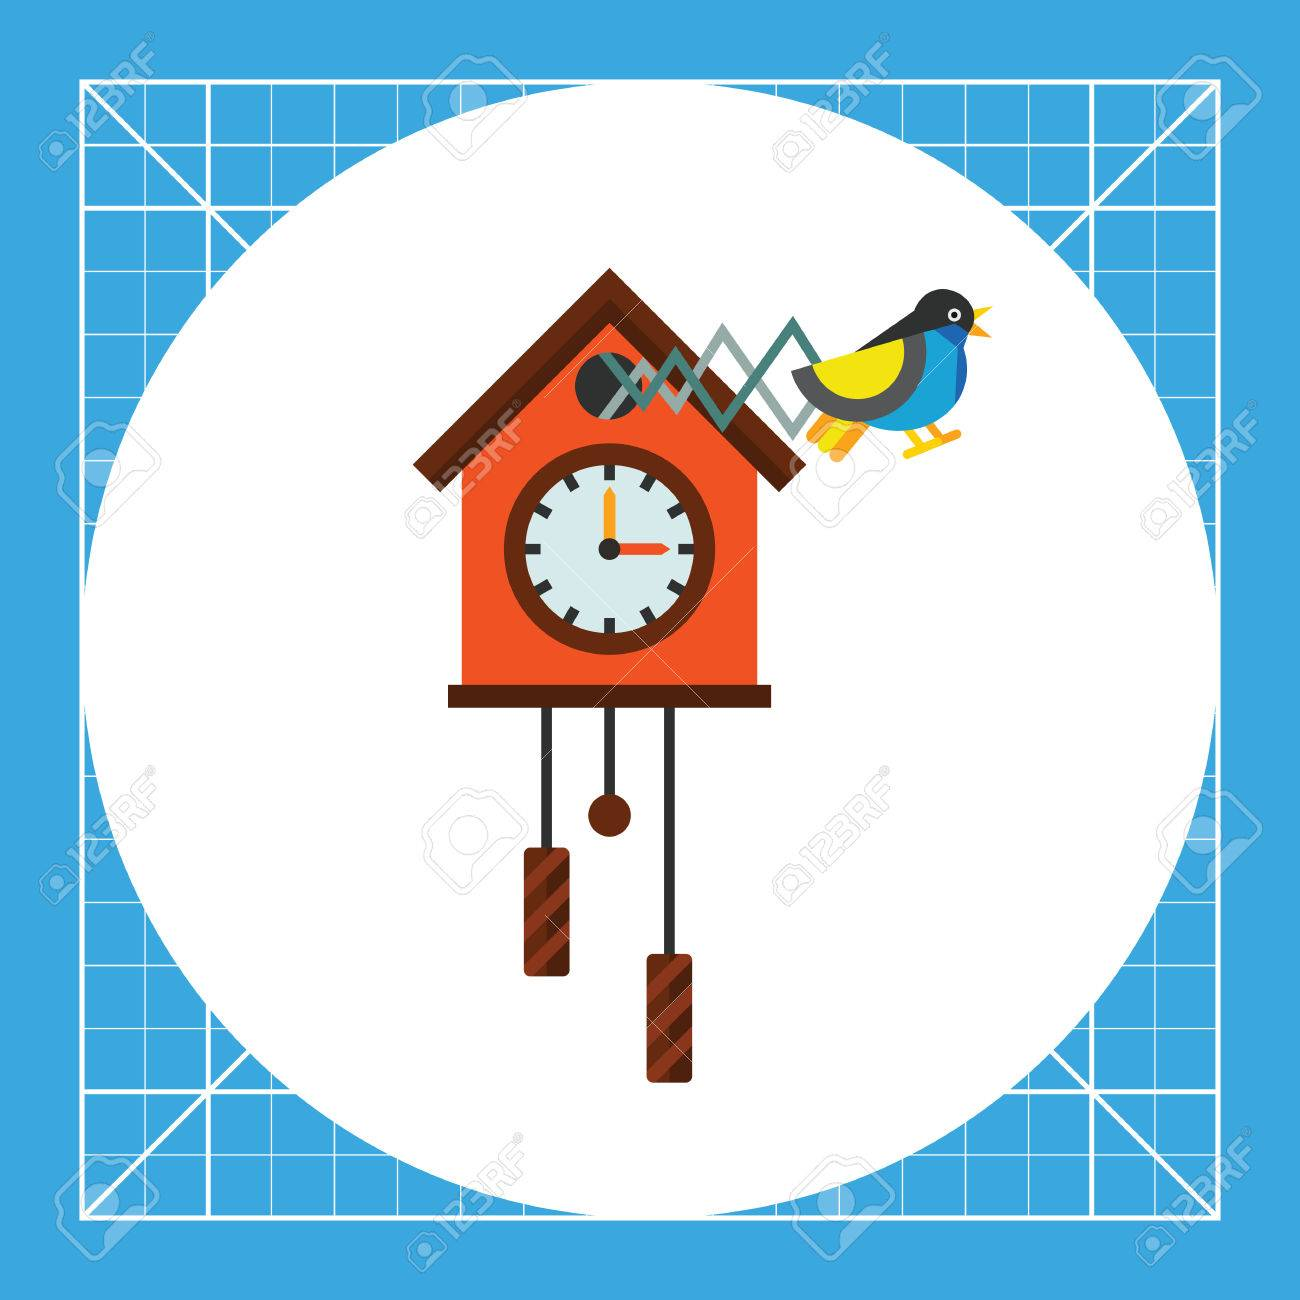 illustration of cuckoo clock time clock hour hand minute